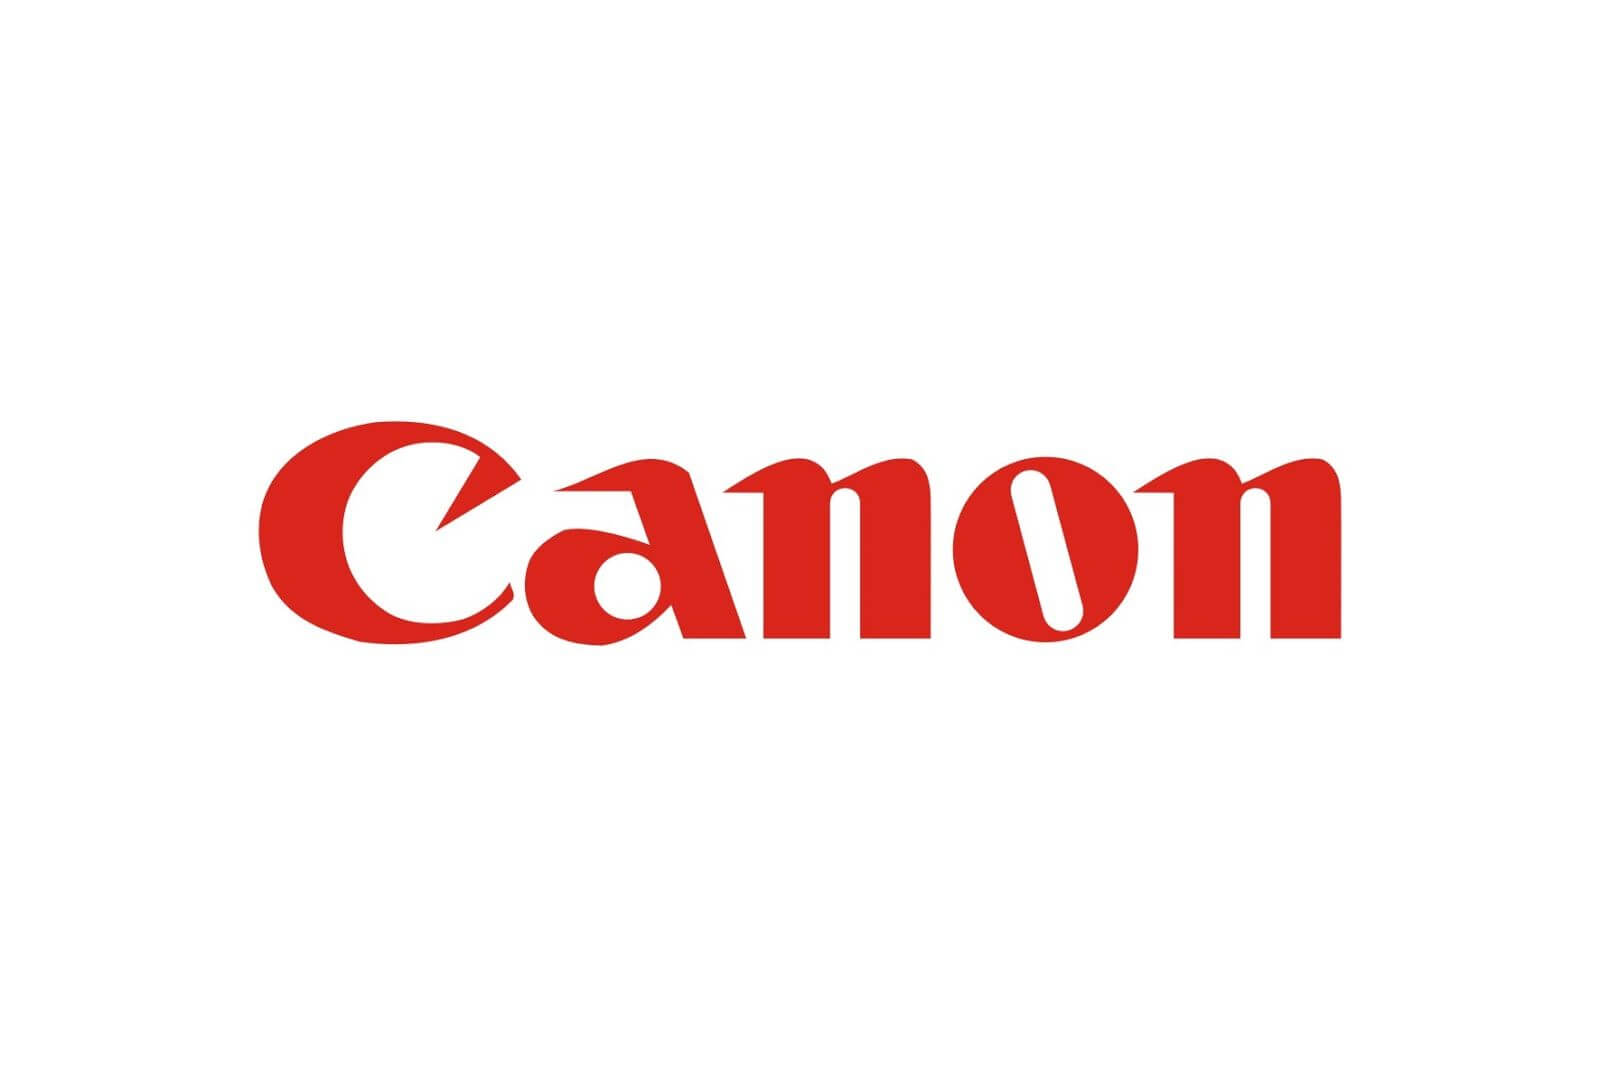 Canon Shaping the future